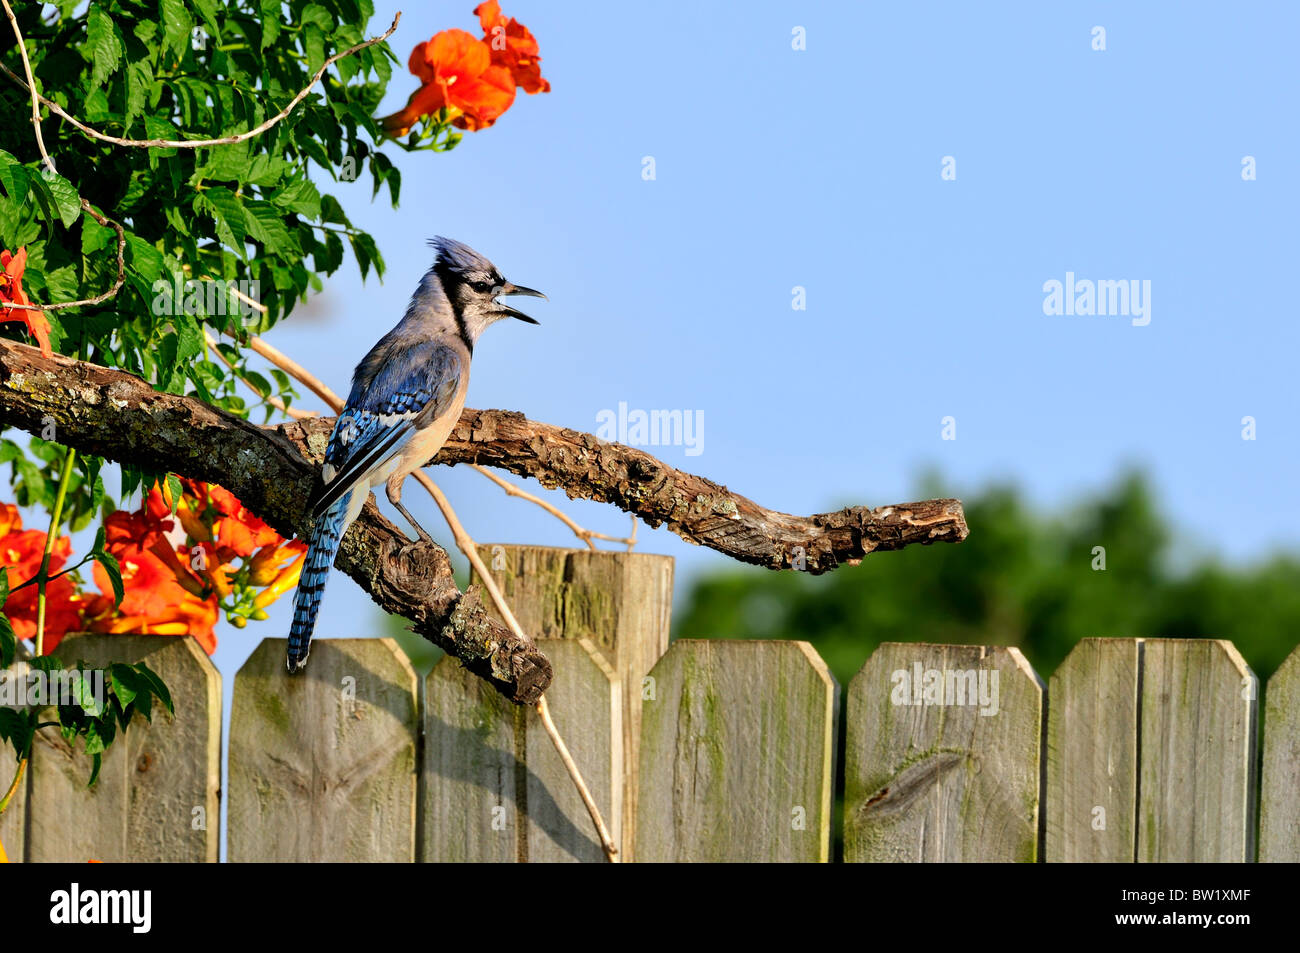 A Bluejay, Cyanocitta cristata, perches on a limb surrounded by trumpet flowers, Campsis x stagliabuana, against Stock Photo